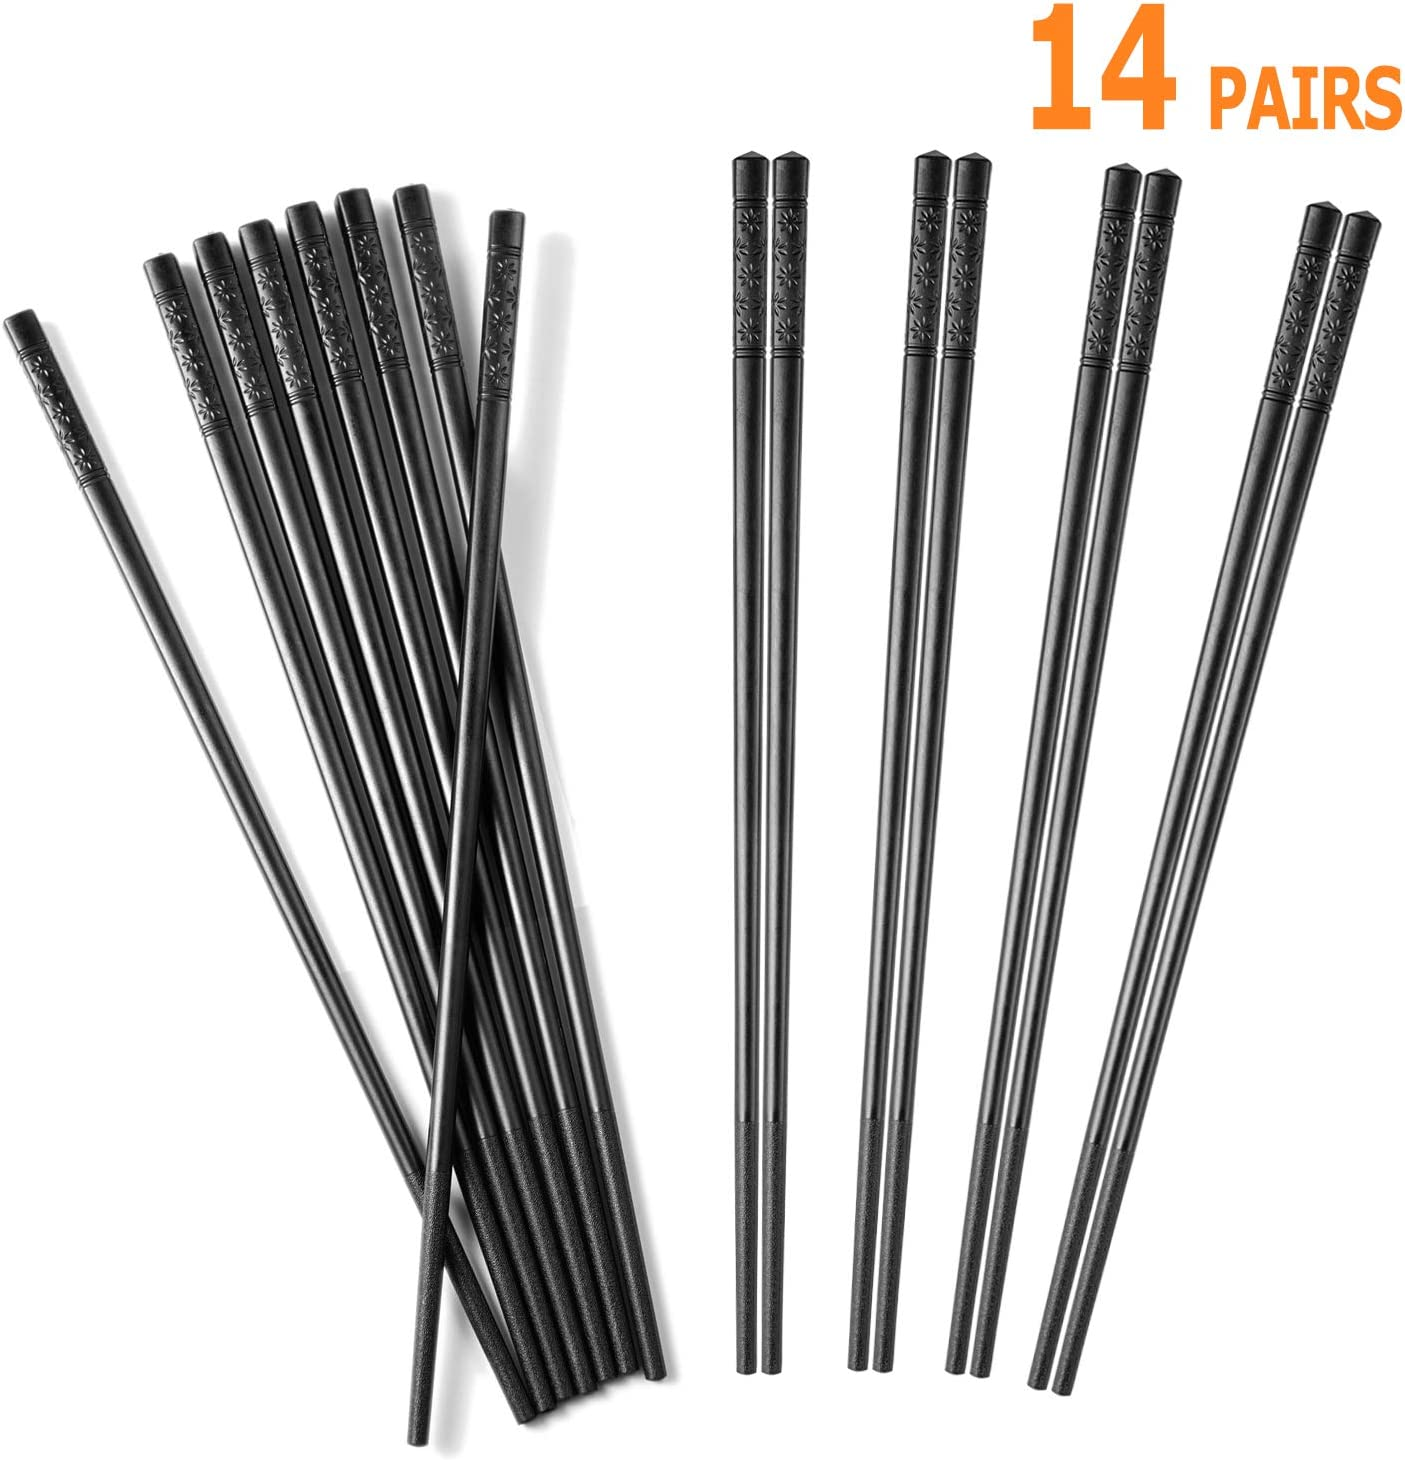 "Chopsticks,14 Pairs Non-slip Fiberglass Chopsticks,Reusable Japanese Chopsticks Dishwasher Safe,9.5"" Black"